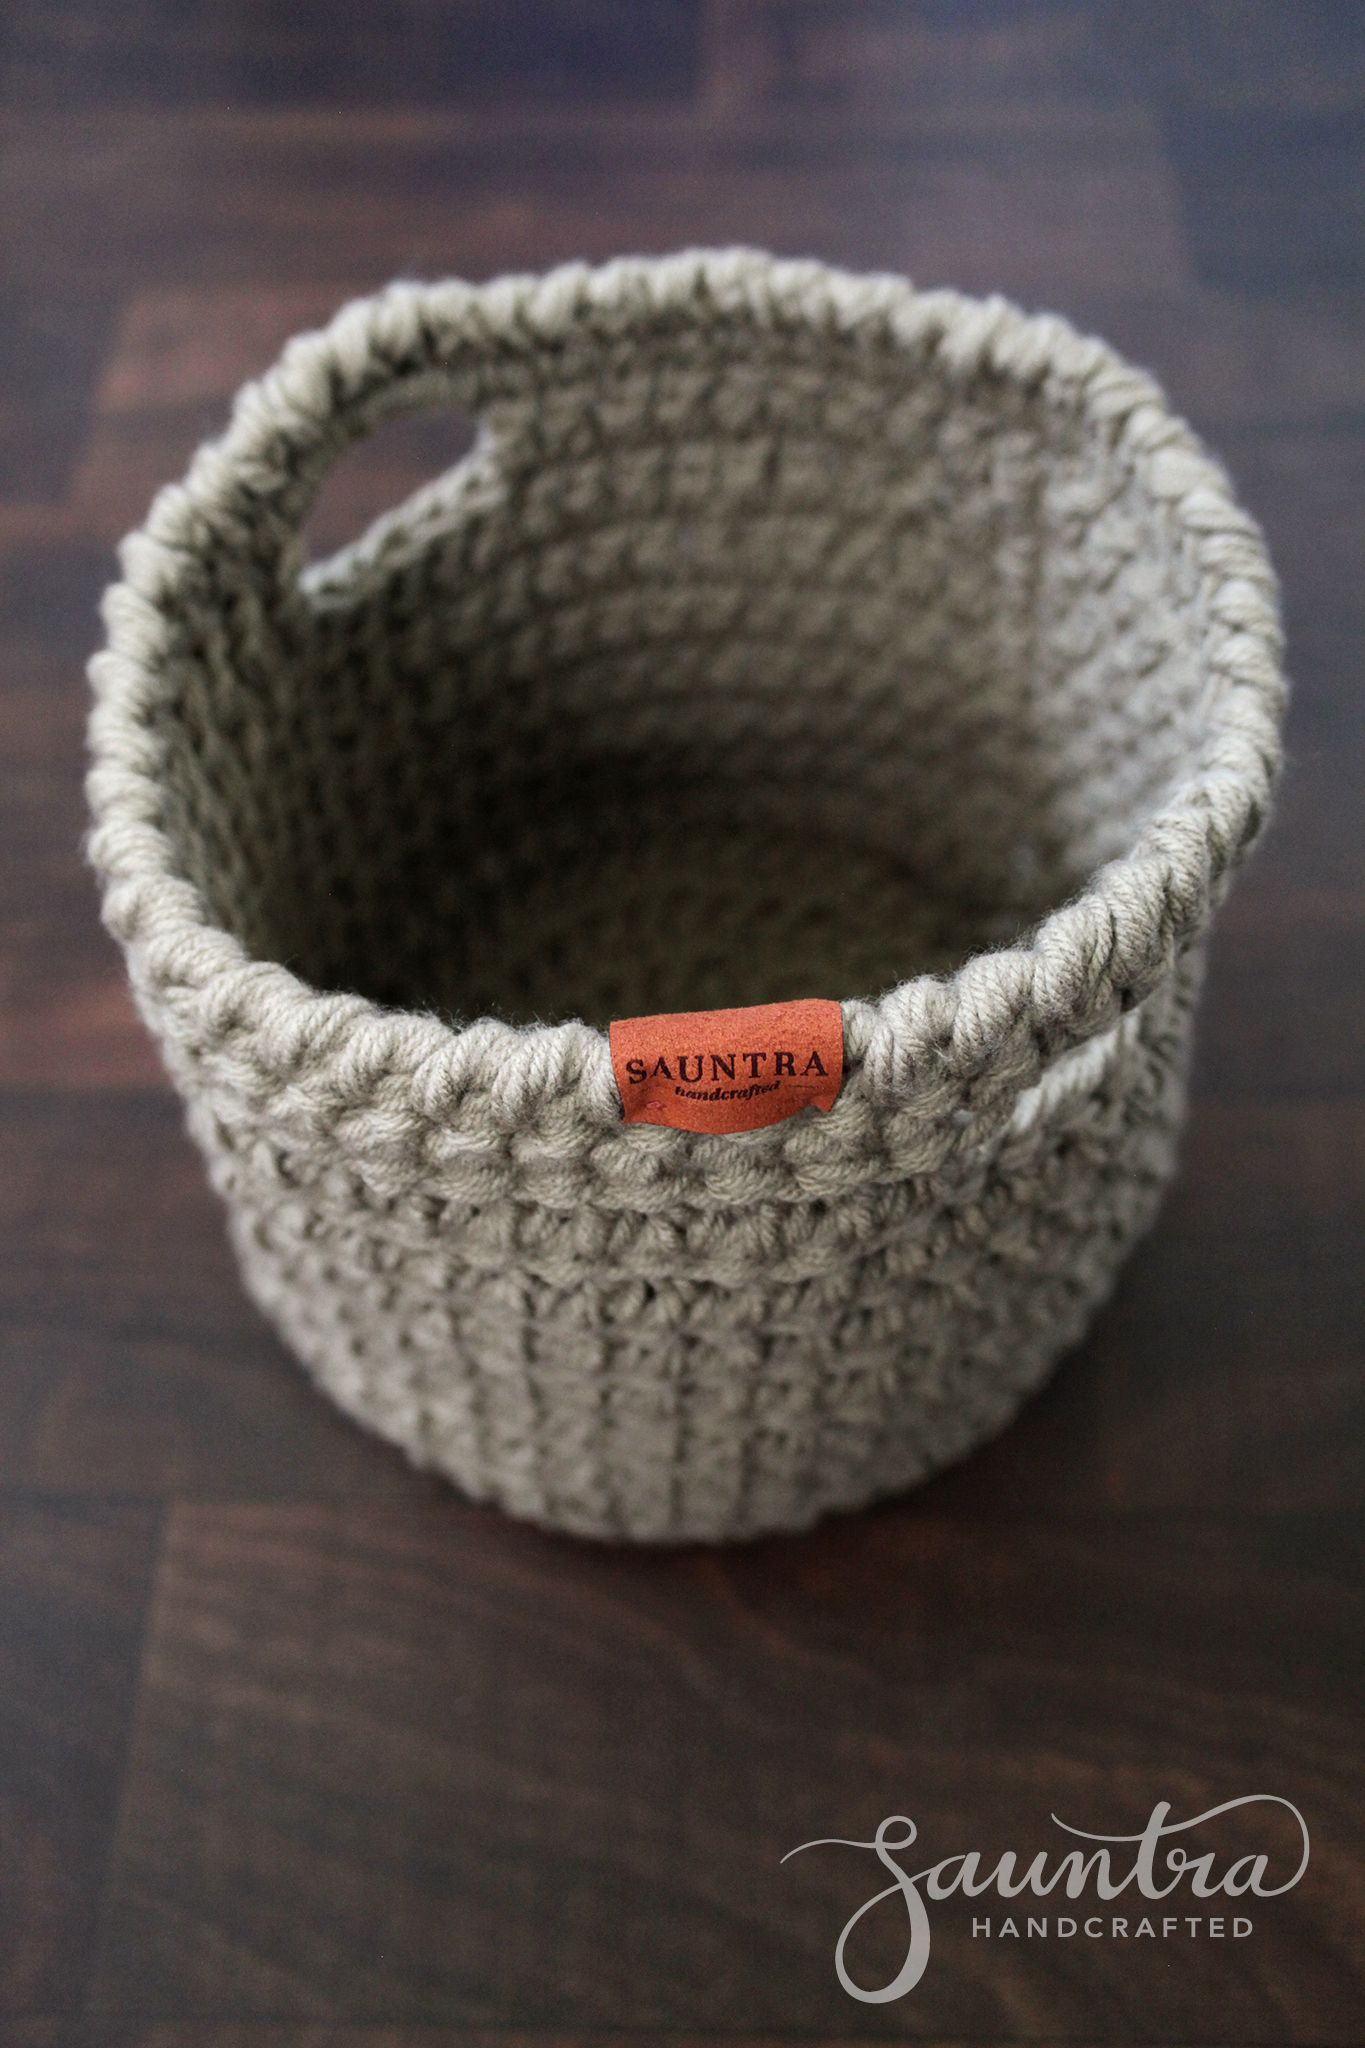 Large Crochet Basket with Handles | Sauntra Handcrafted | Get ...